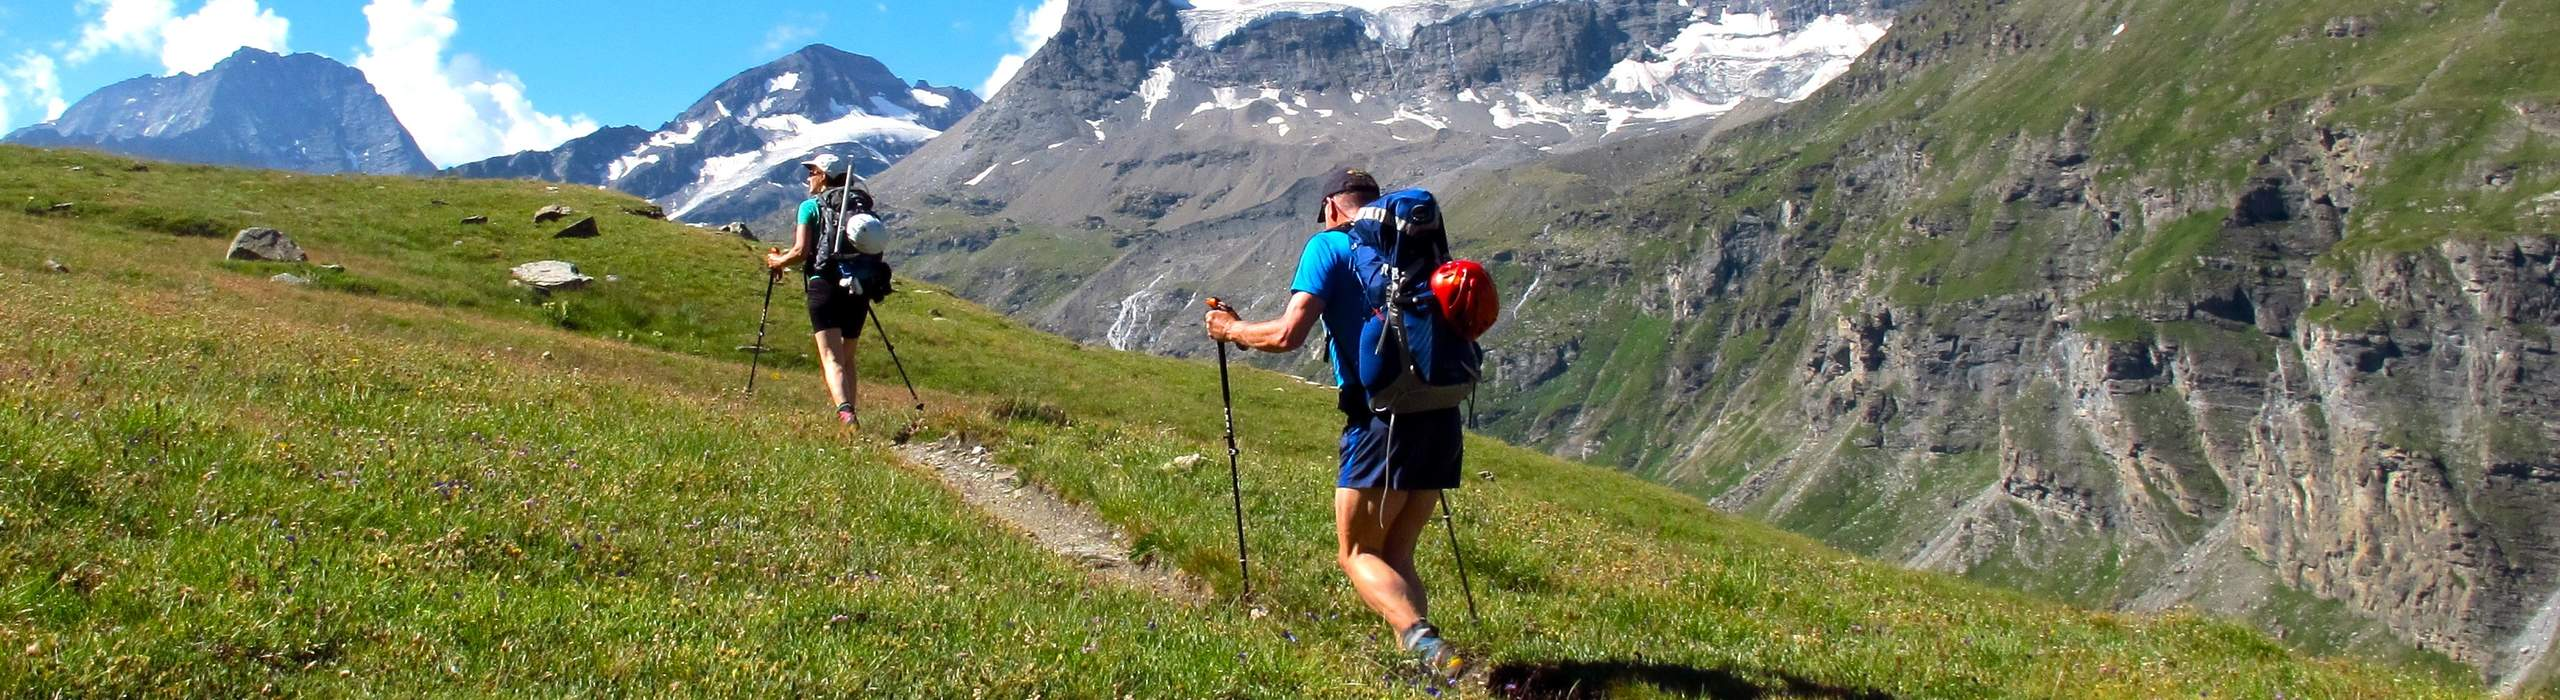 Hike the Haute Route from Chamonix to Zermatt with Chamex mountain guides